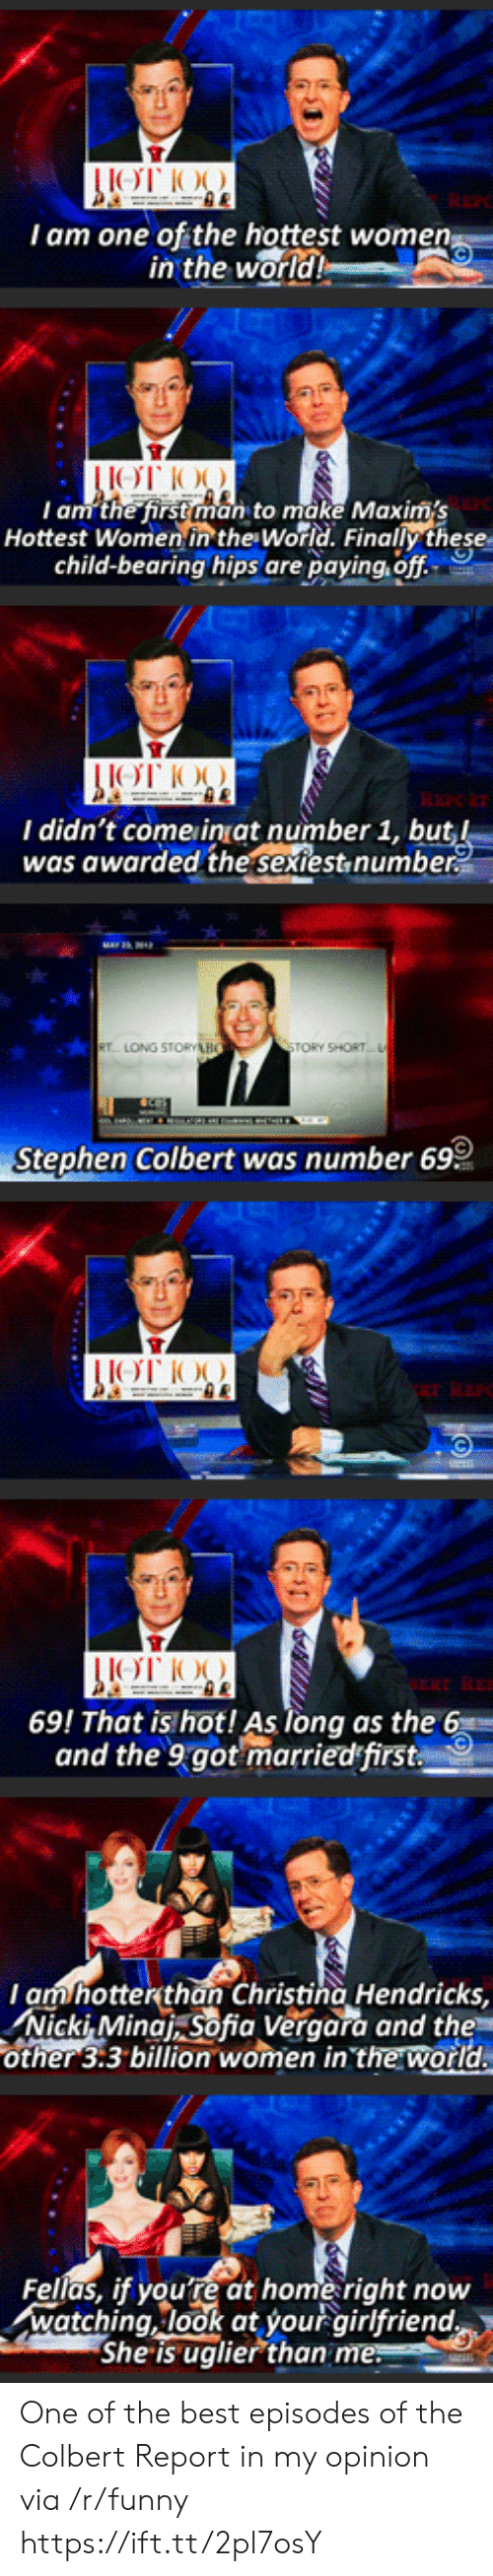 Funny, Stephen, and Best: I am one of the hottest wome  in the  world  I am the first man to make Maxims  Hottest Women in the World. Finally these  child-bearing hips are paying, off  I didn't come inat number 1, bu  was awarded the sextest,numbe  TORY SHORT  Stephen Colbert was number 69  69! That is hot! As long as the 6  and the 9got marriedfirst  am hotterthan Christina Hendricks,  Nicki, Minat sofia Veraara and the  other 3:3 billion women in the world  Fellas, if youre at home right now  watching, look at your airlfriend  She is uglier than One of the best episodes of the Colbert Report in my opinion via /r/funny https://ift.tt/2pl7osY